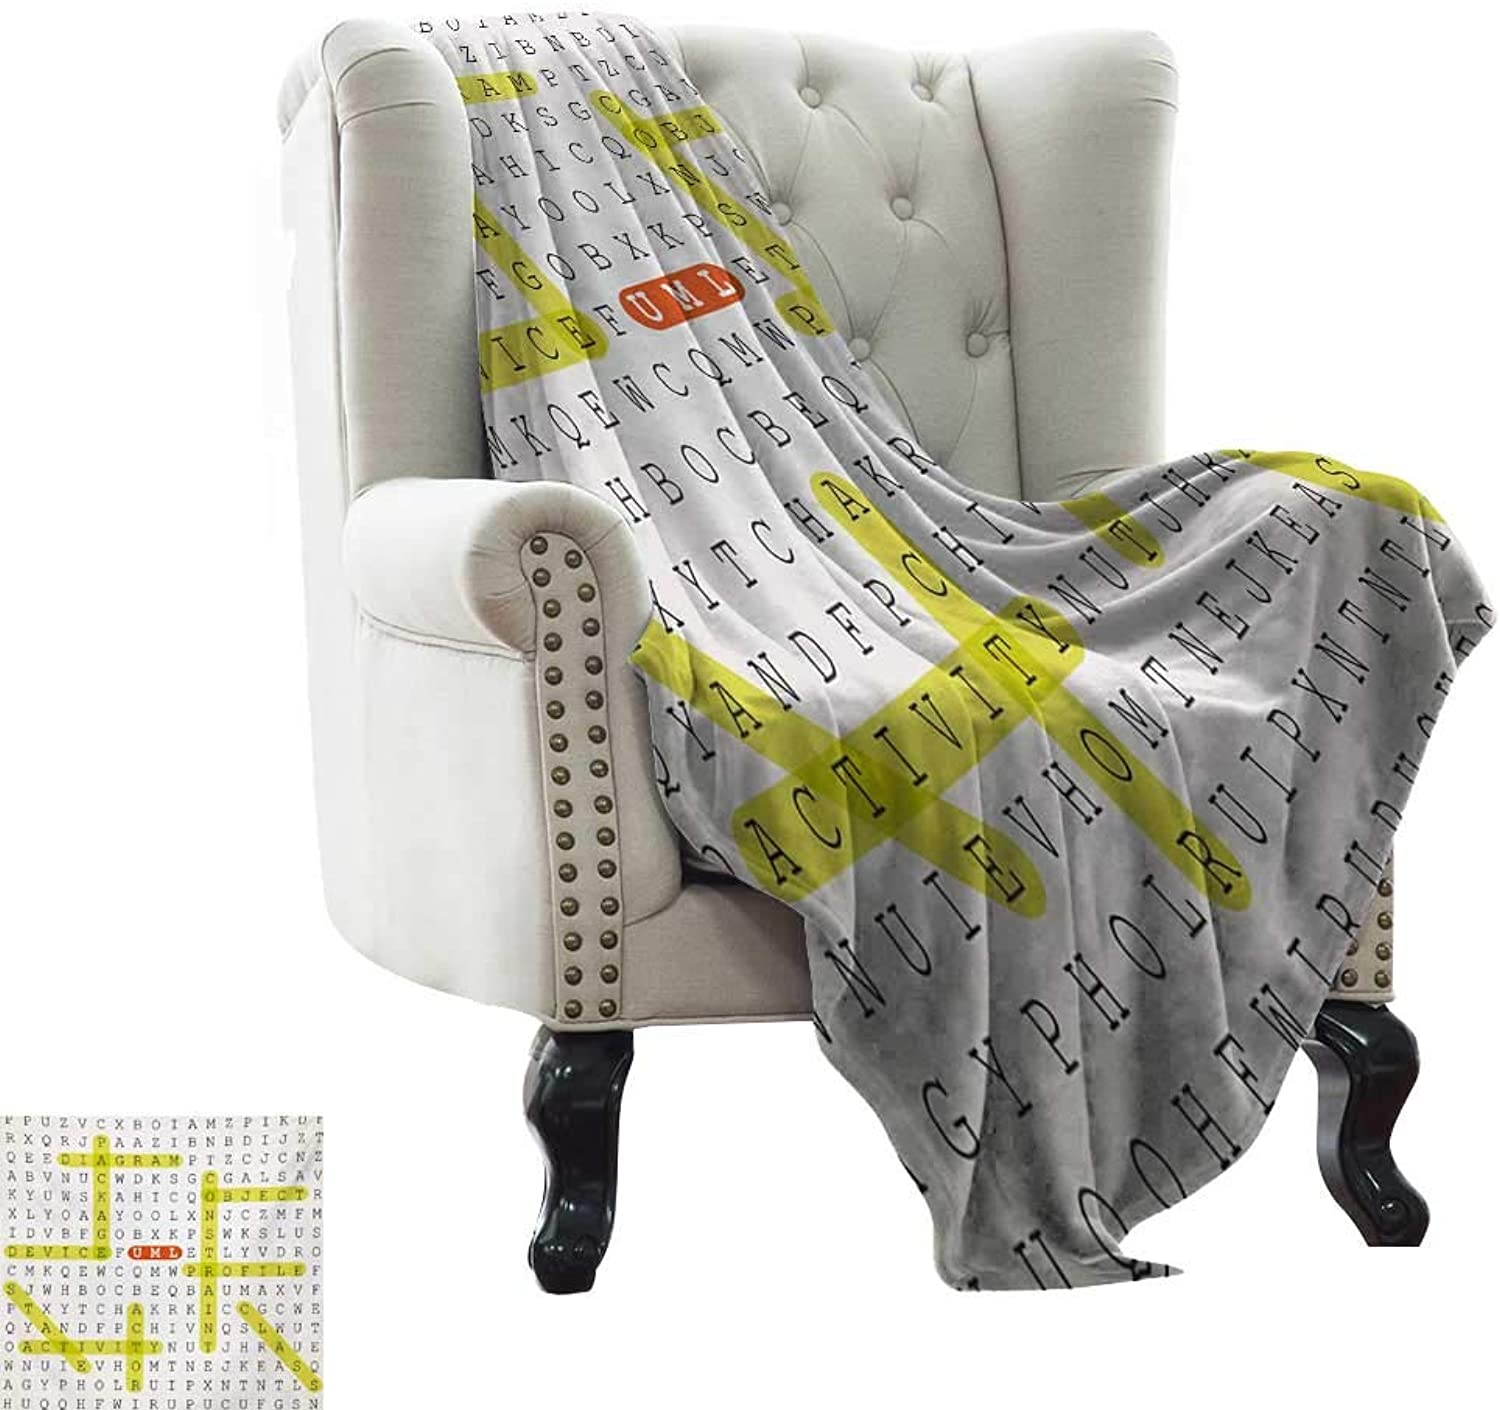 LsWOW Chunky Knit Blanket Word Search Search Search Puzzle